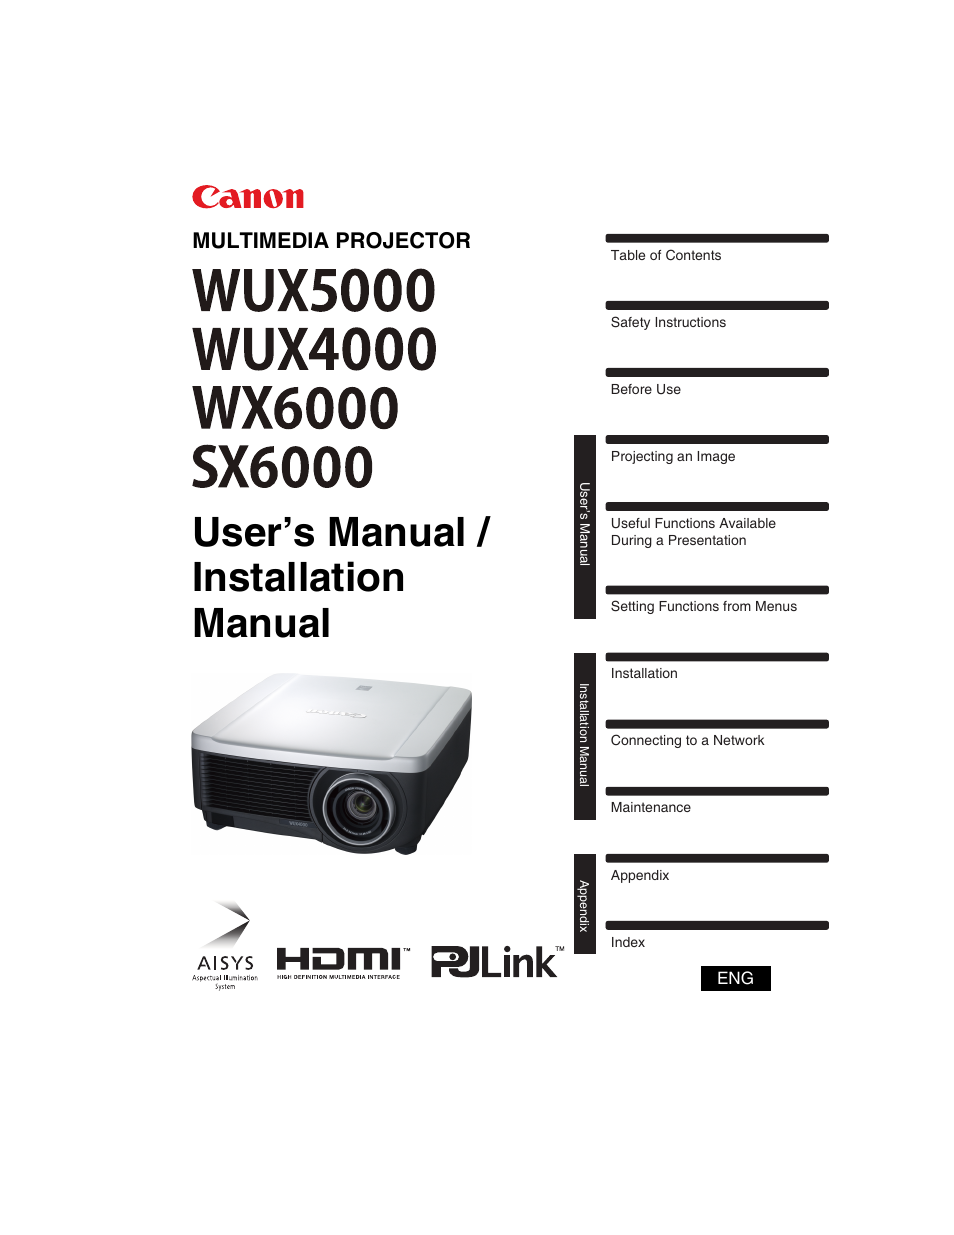 Canon Wux4000 Manual 911 X 448 27 Kb Jpeg 4 Wire Trailer Wiring Diagram 809 648 80 Array Xeed Sx6000 User 240 Pages Also For Rh Manualsdir Com